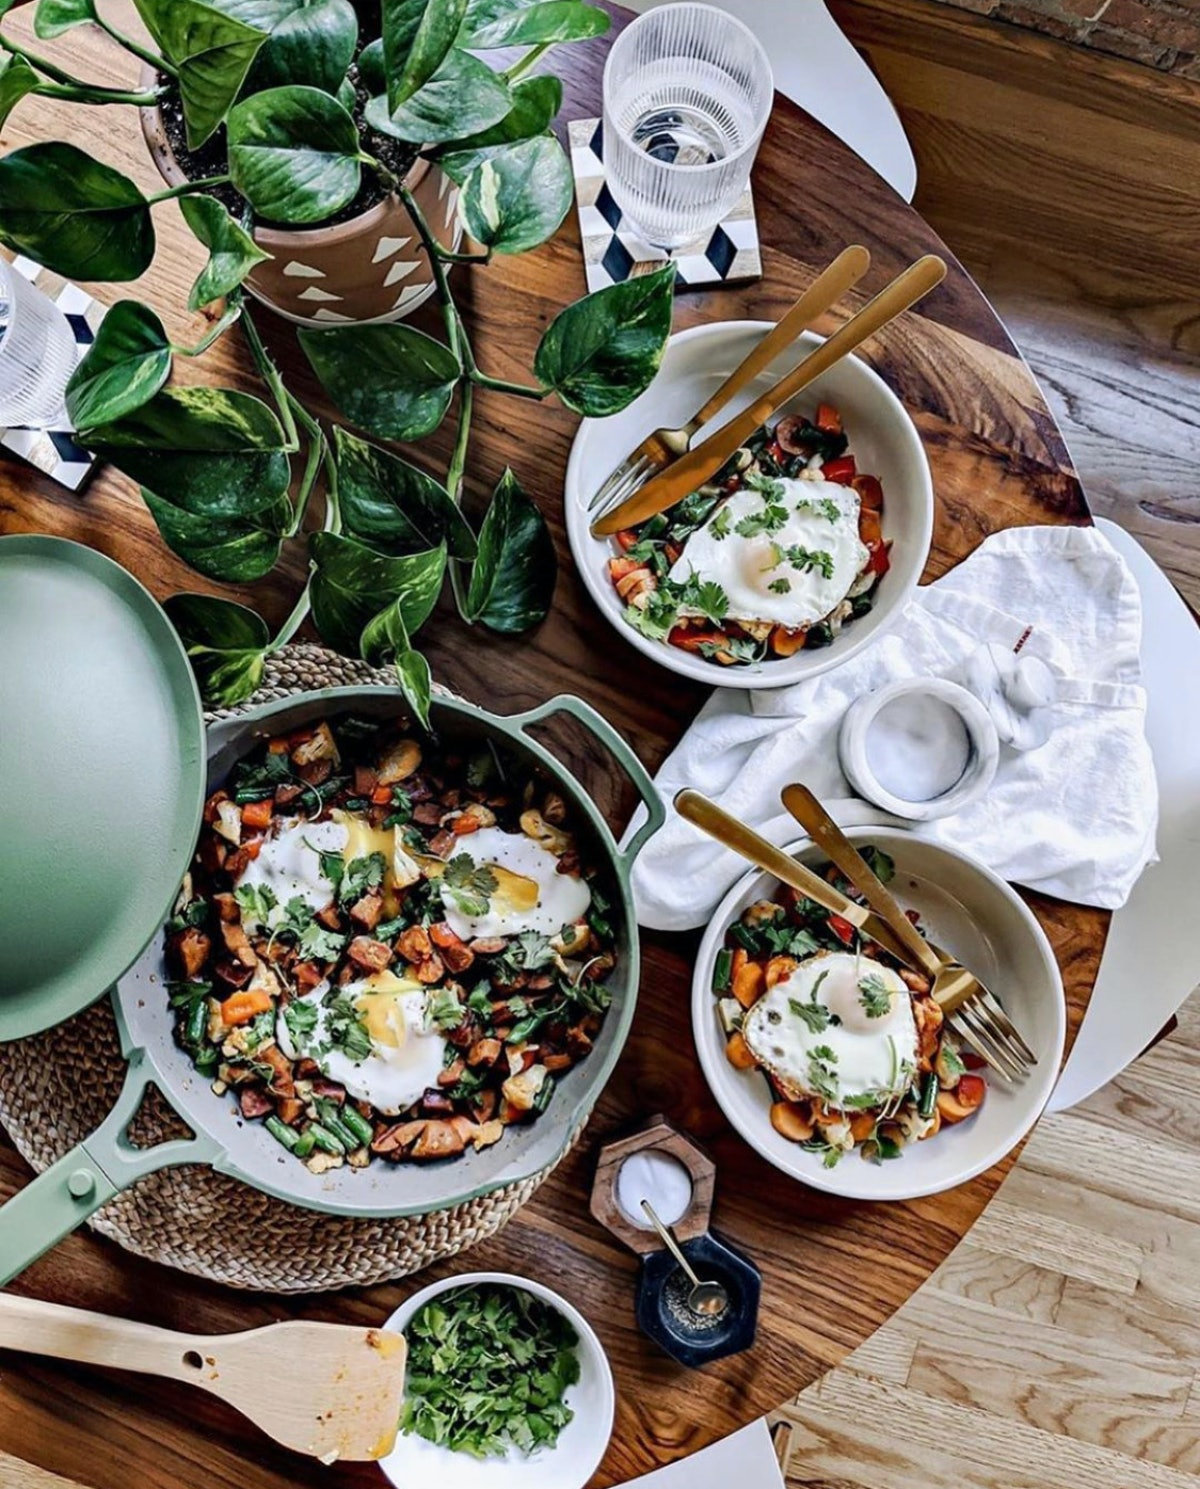 A colorful summer dinner is served on a wooden table in teal Our Place cookware.